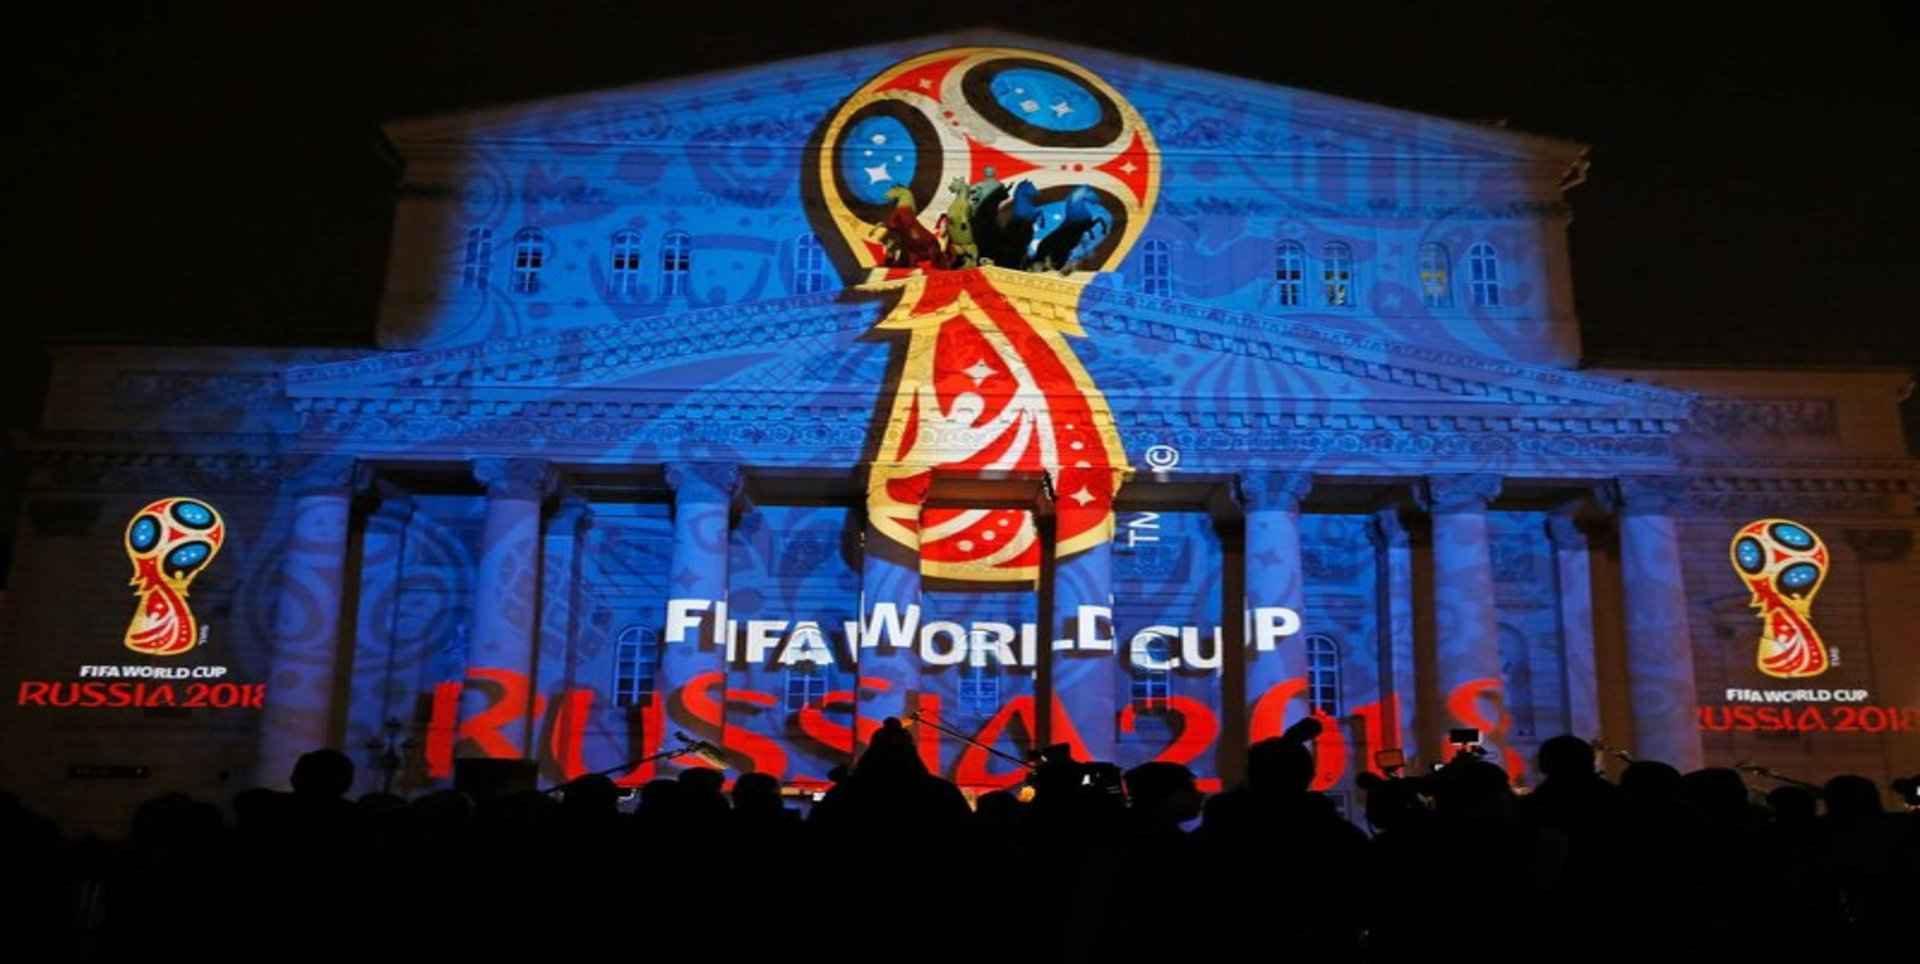 2018 FIFA World Cup Qualification UEFA Schedule Online